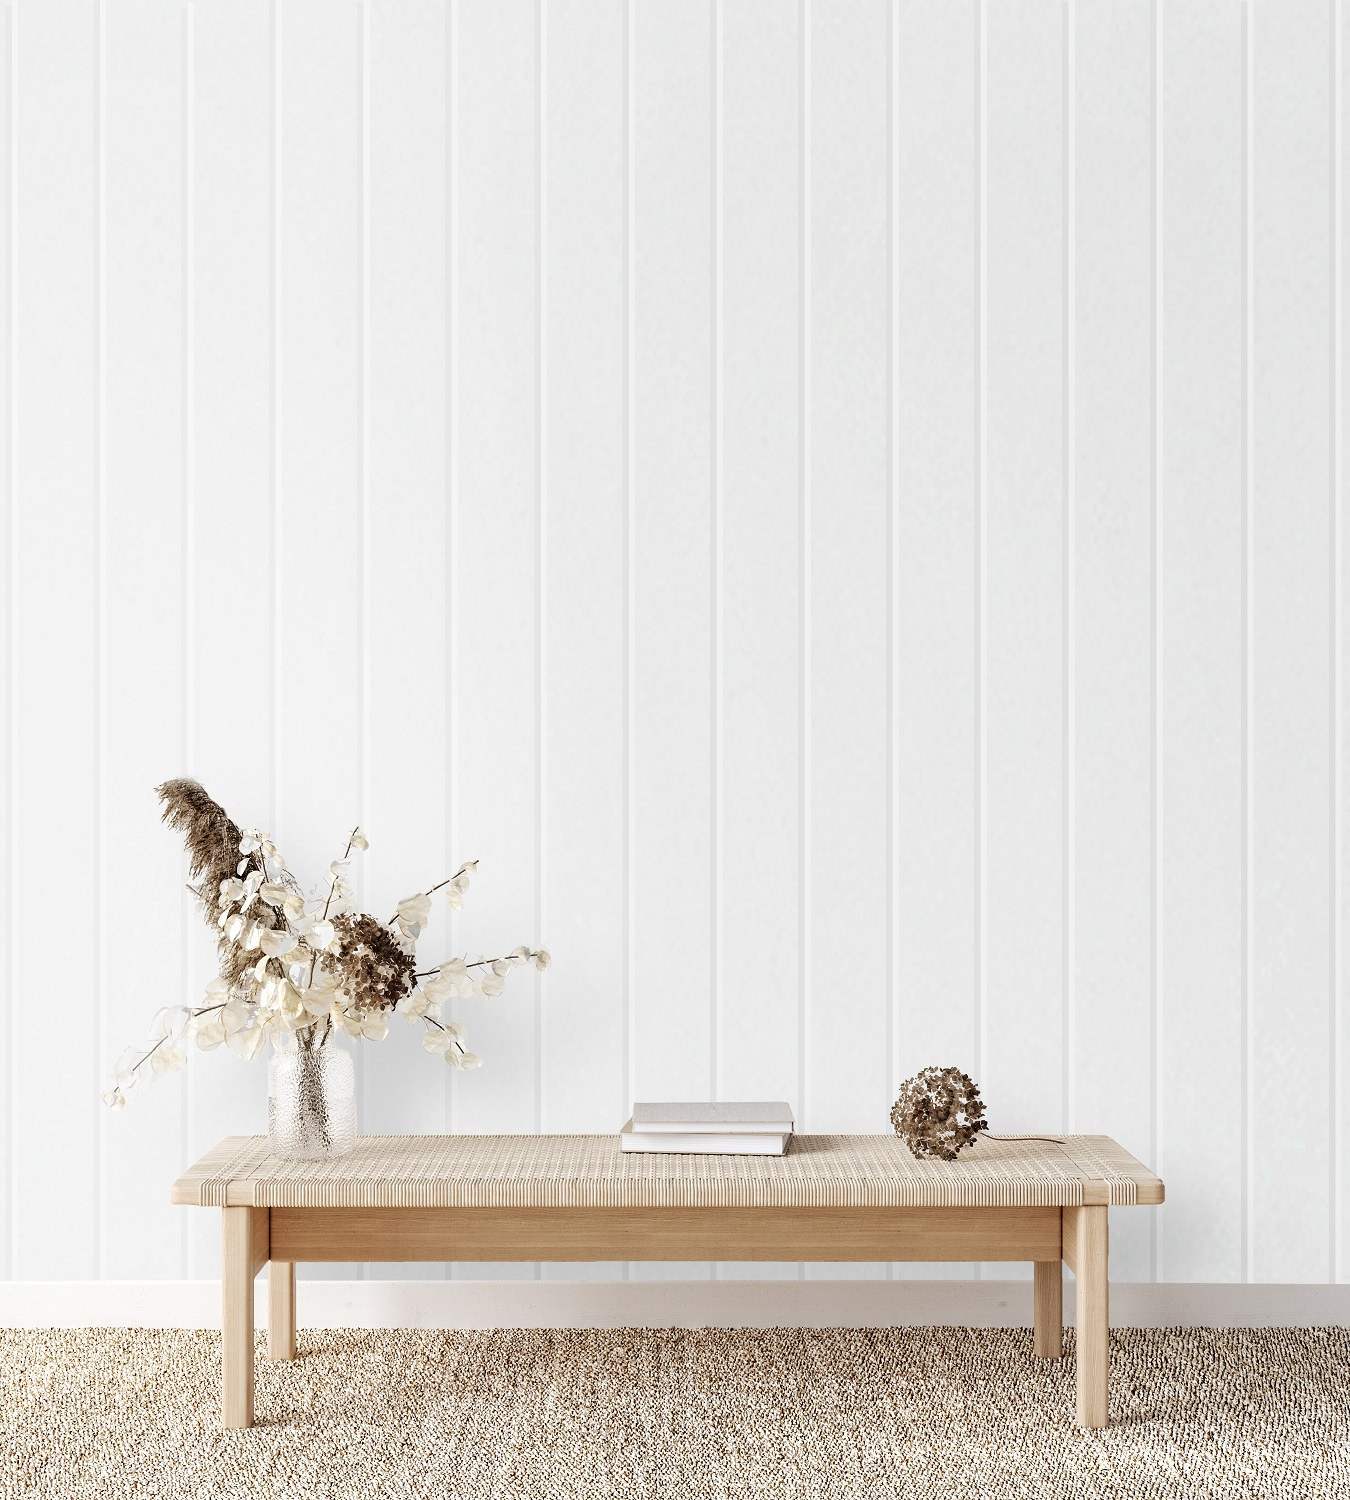 maestro panel witte wandpanelen wall panels muurbekleding lambris mur